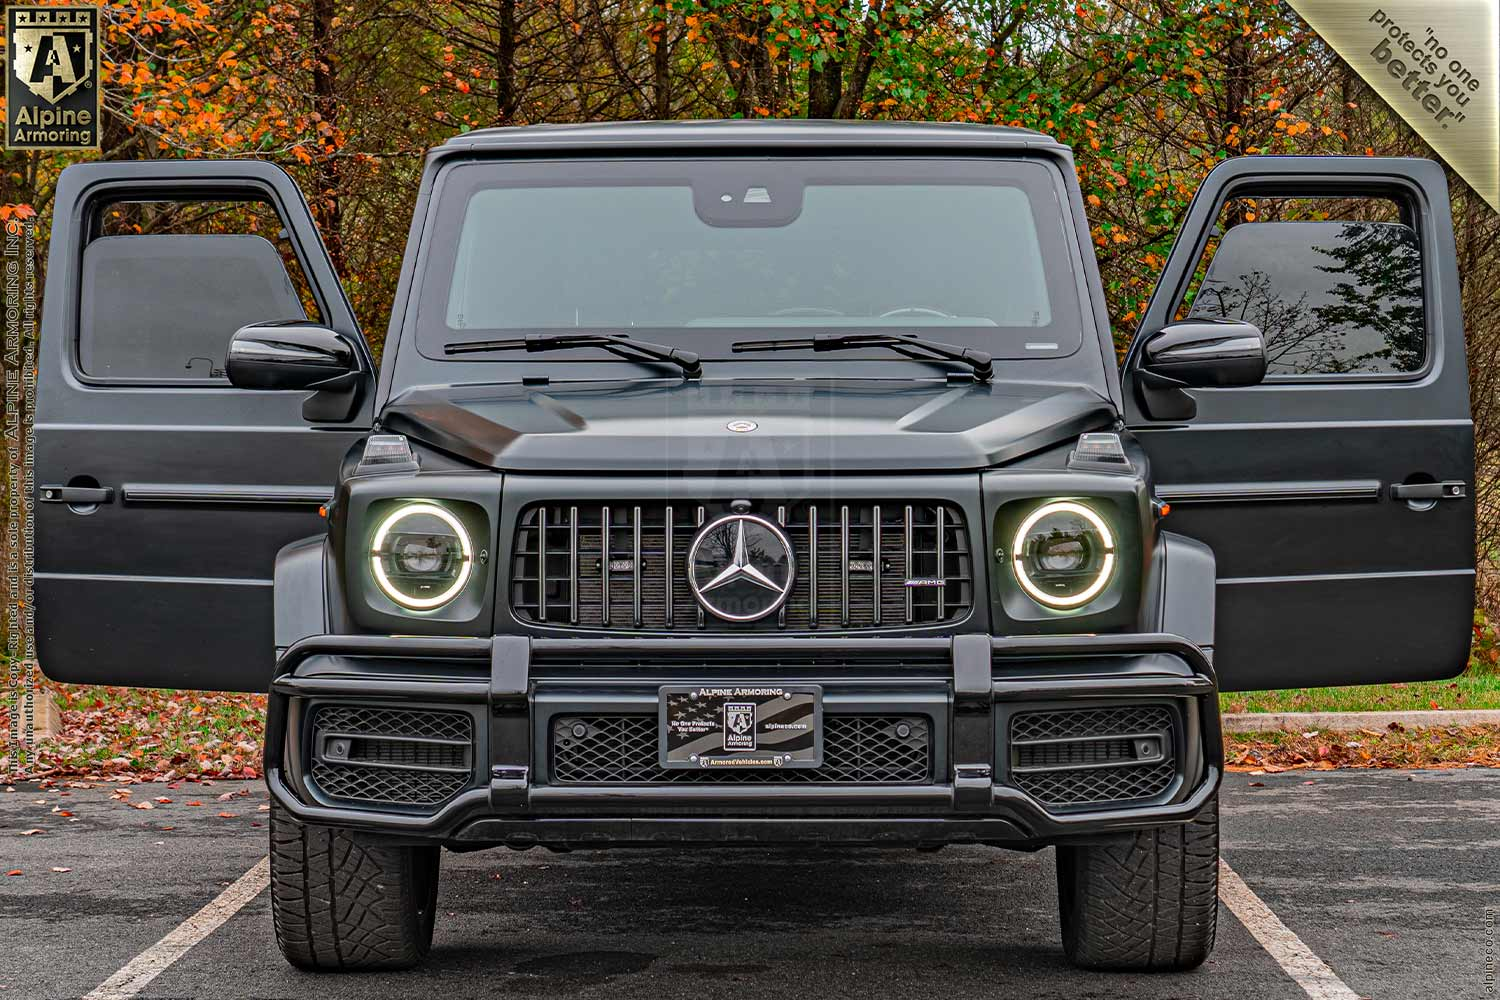 New Inventory armored Mercedes-Benz G63 Level A9/B6+ Exterior & Interior Images VIN:1485